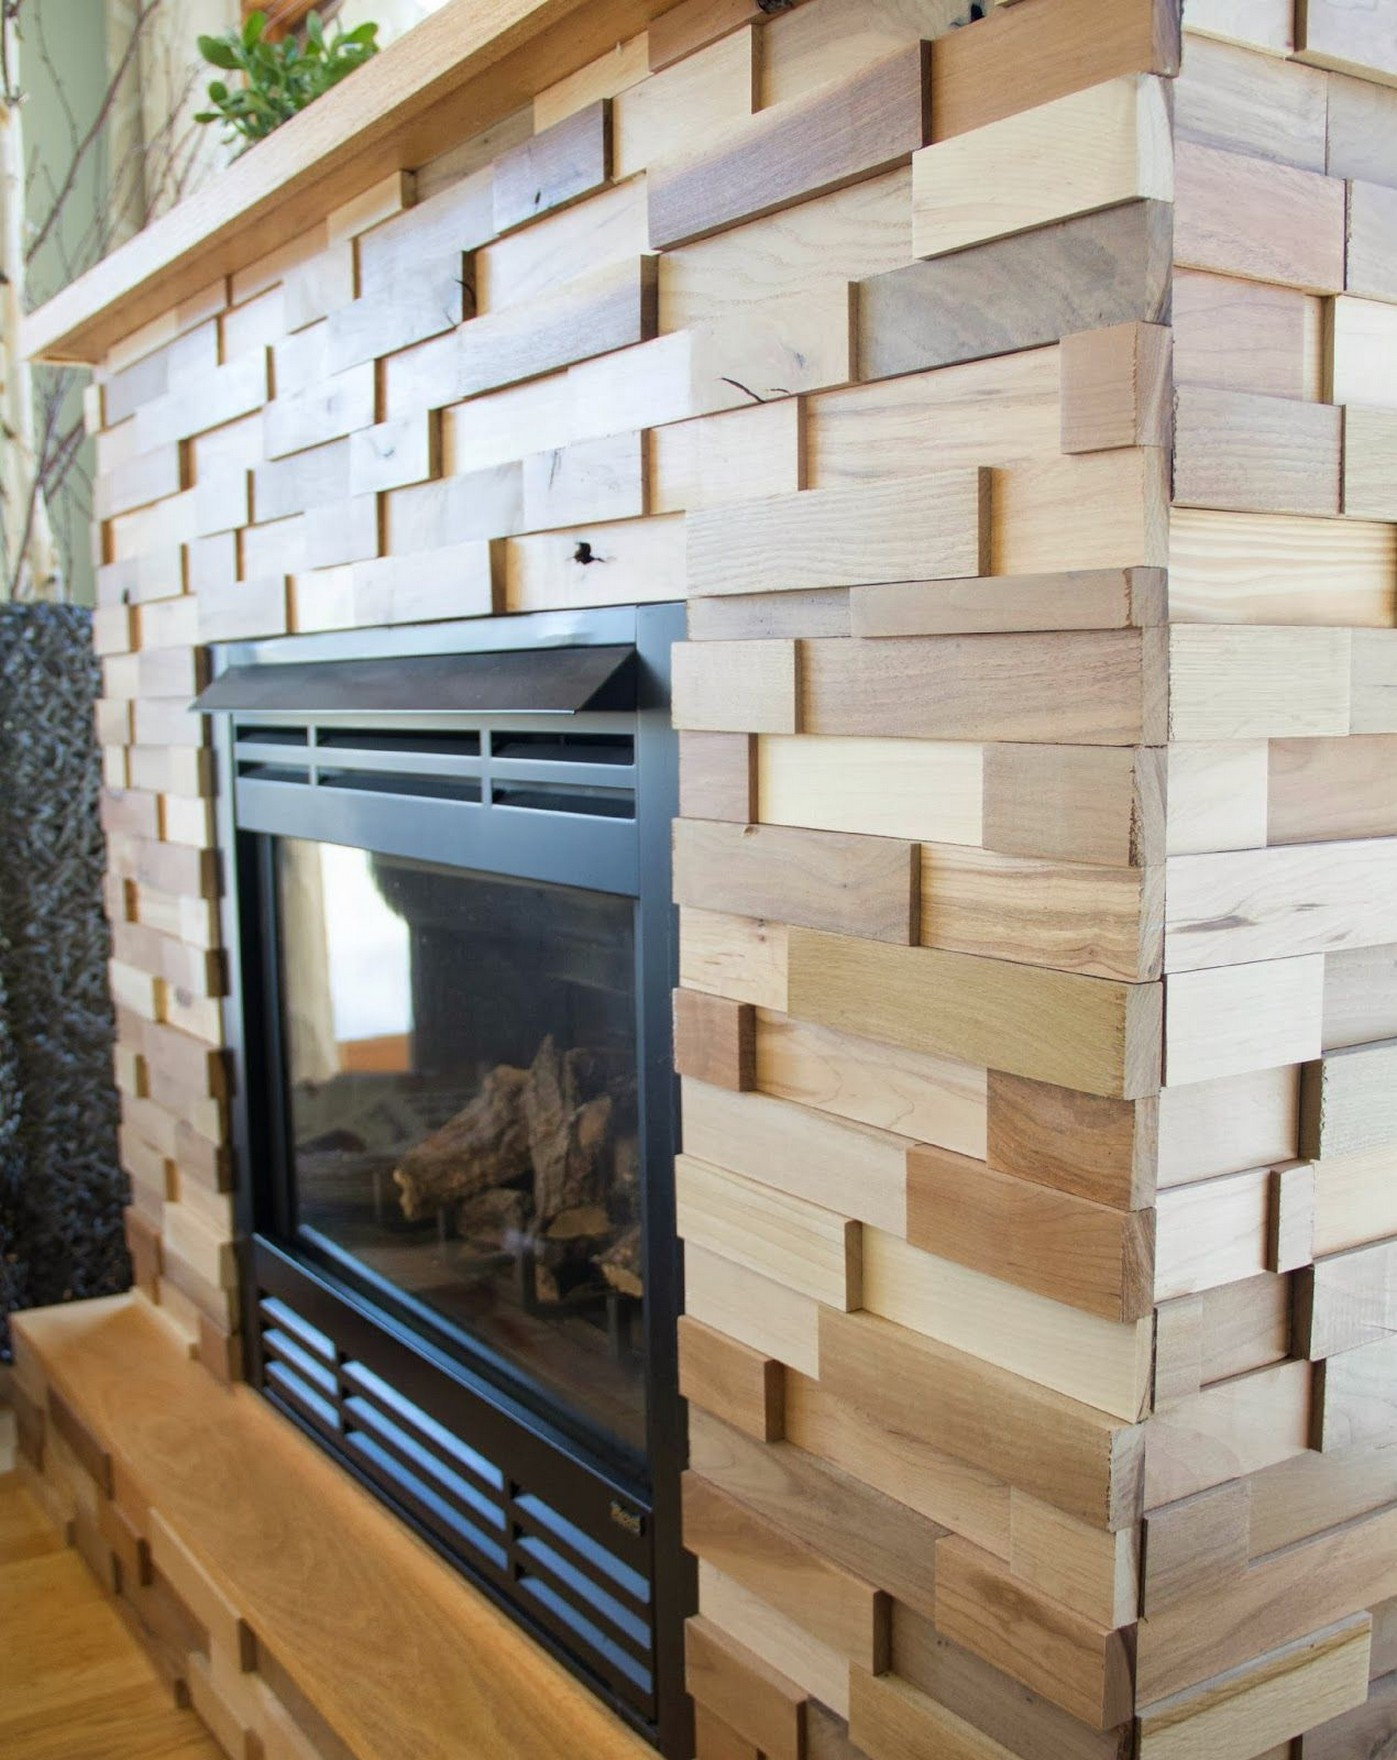 76 Stone Fireplaces The Hearth Is The Heart of The Home 18